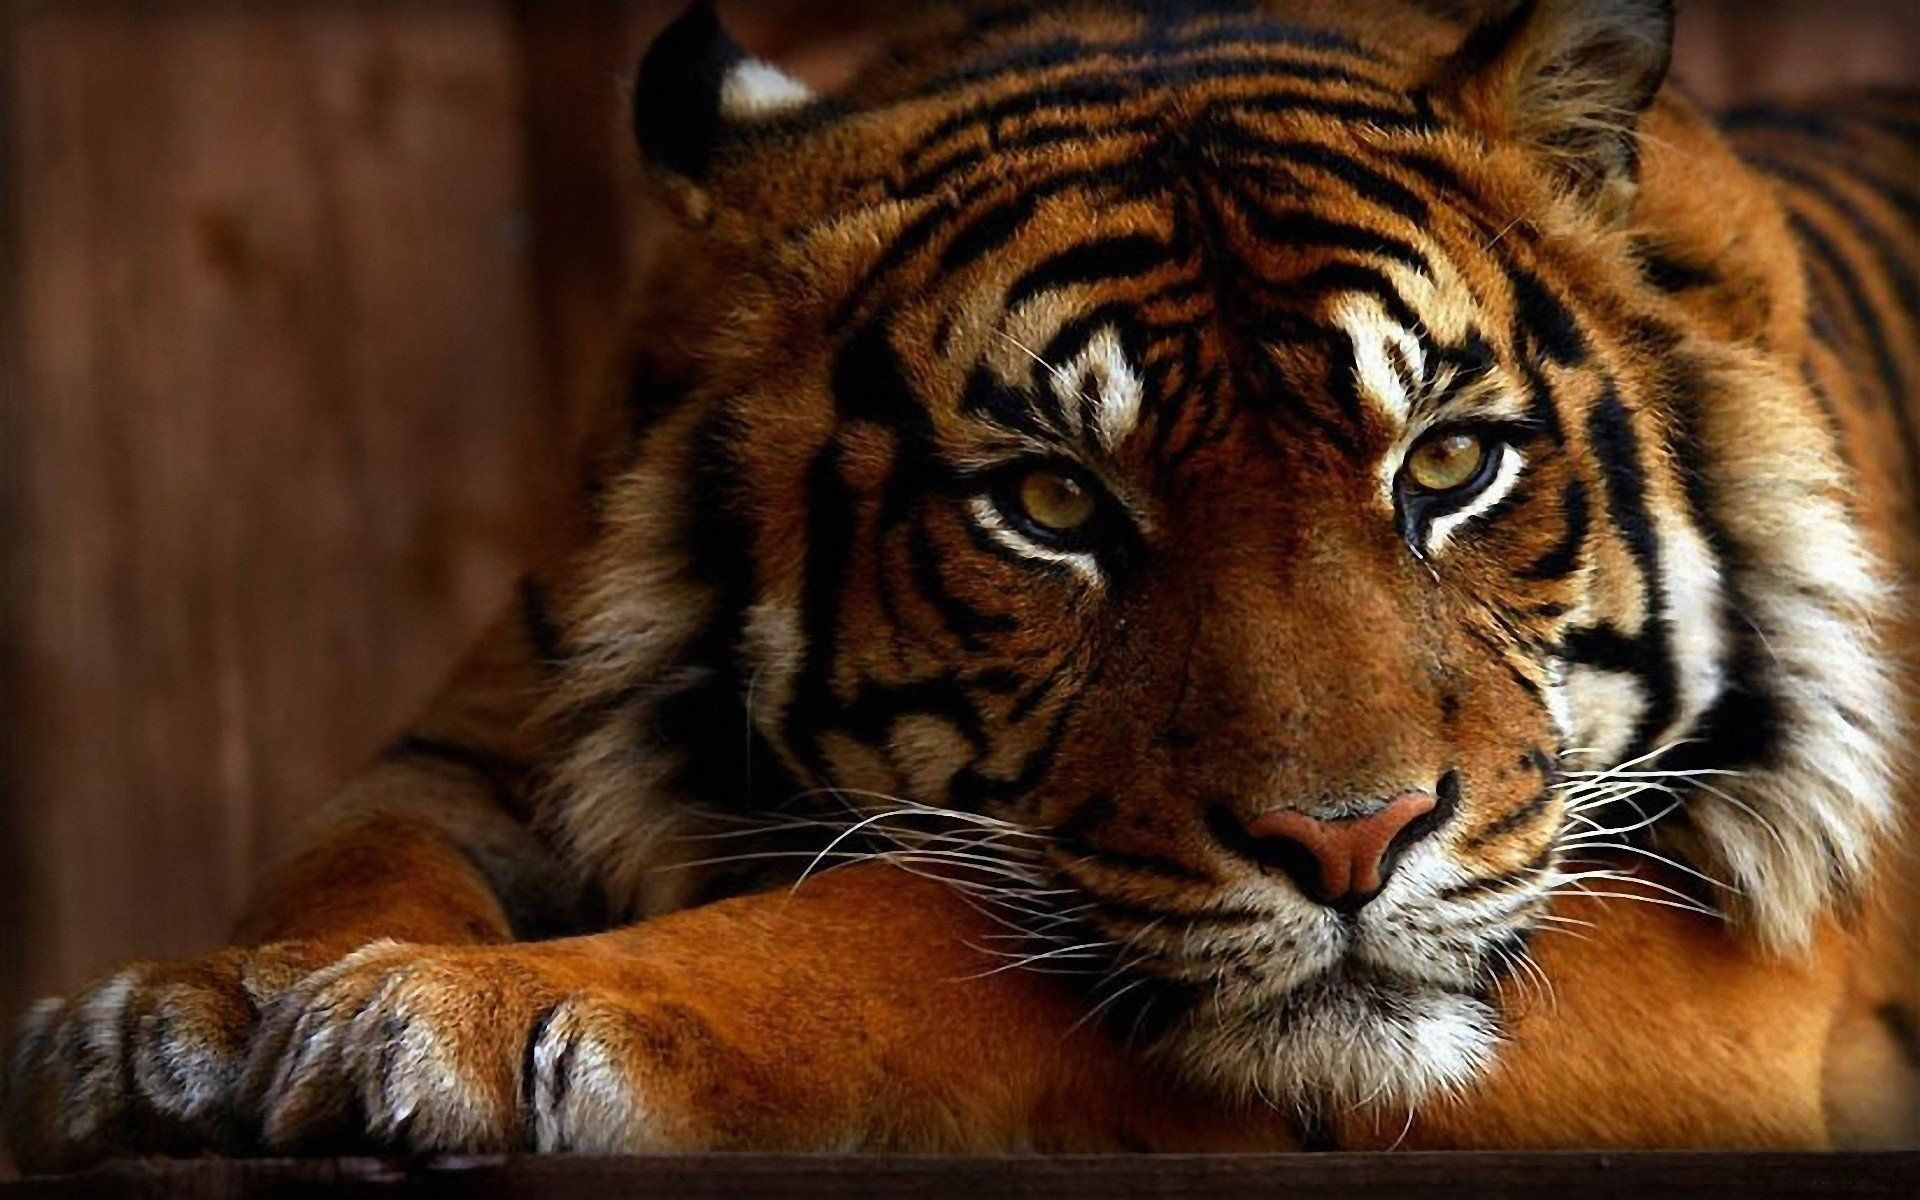 Tiger Wallpapers   Top Tiger Backgrounds   WallpaperAccess 1920x1200